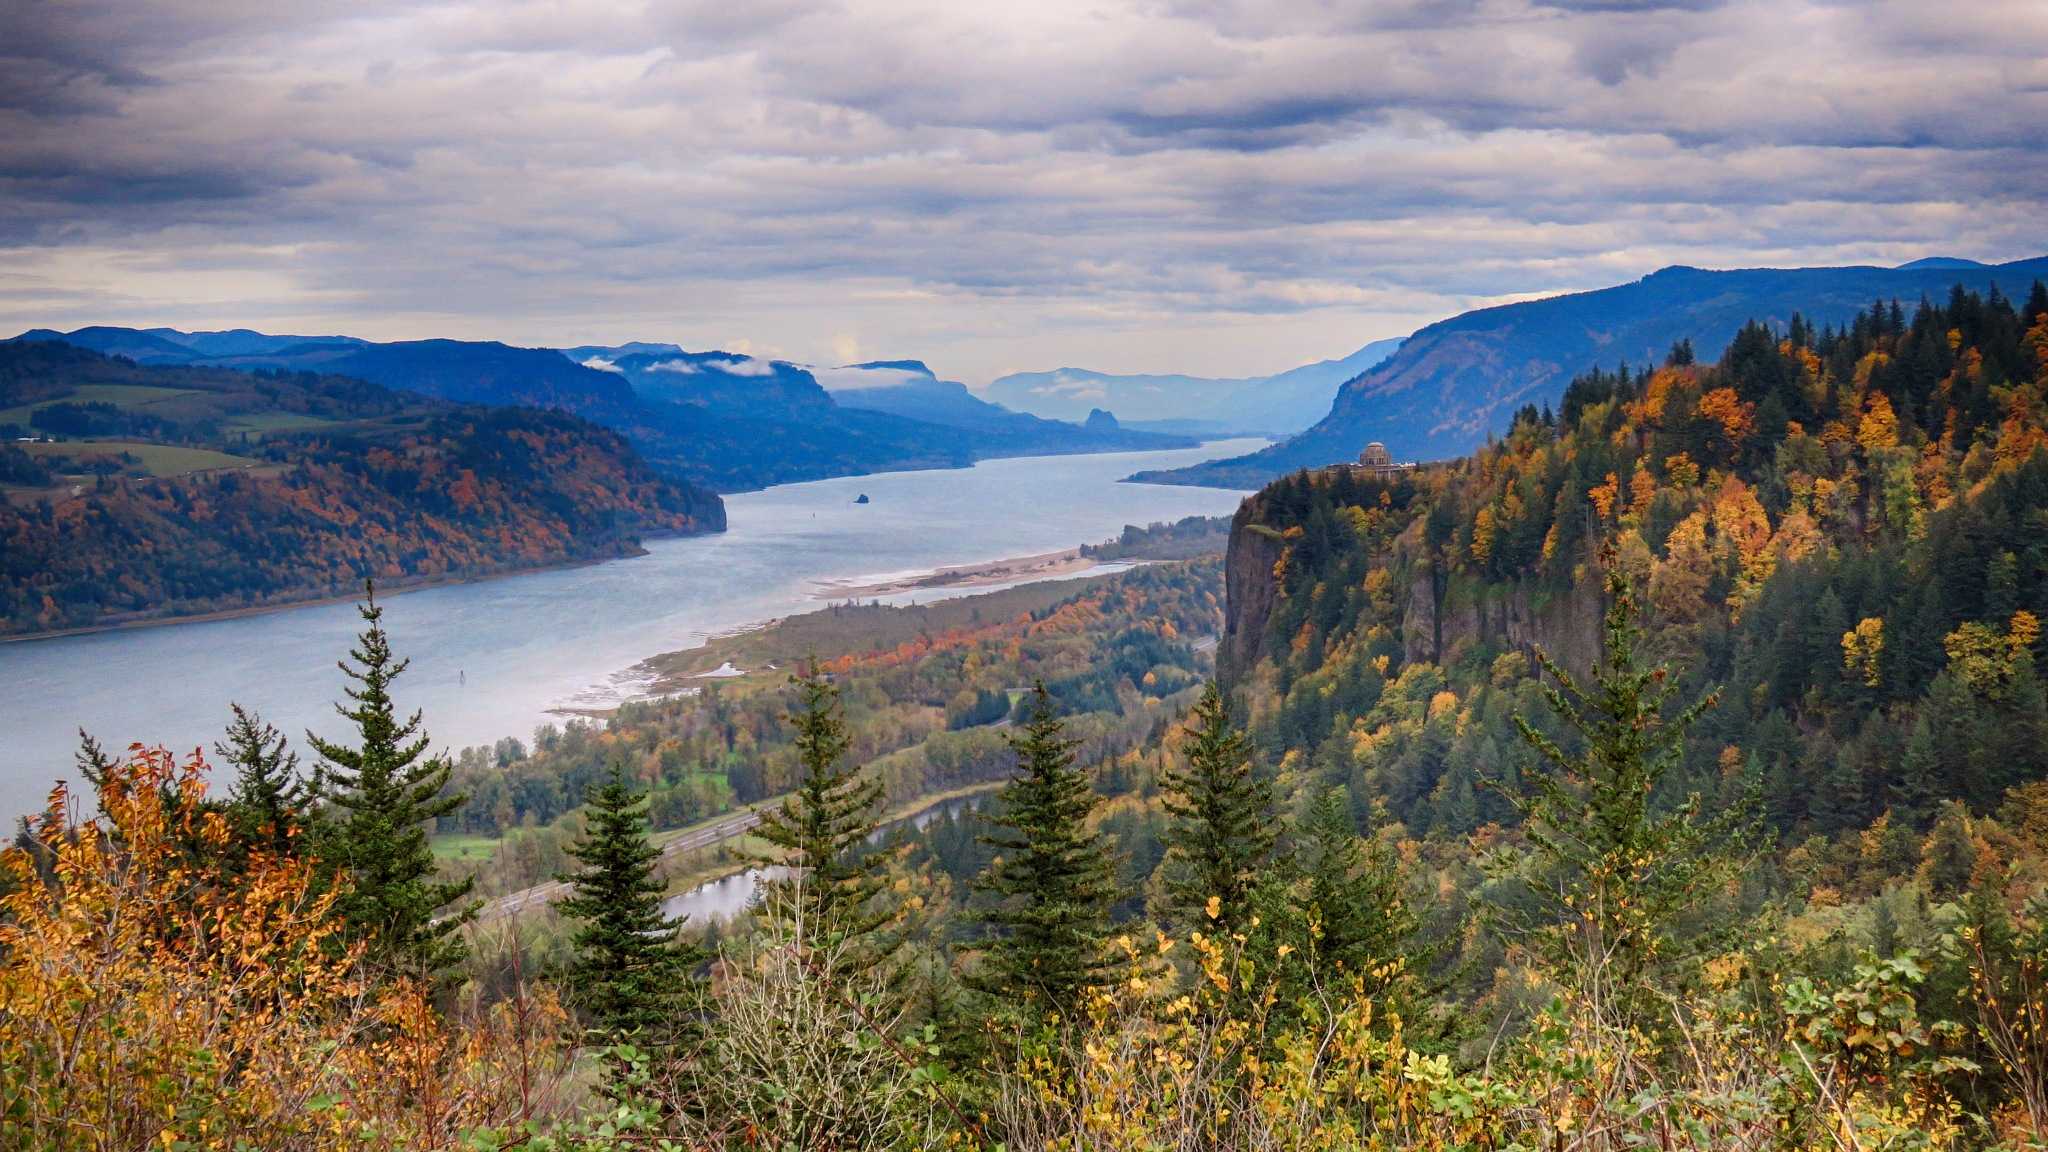 Autumn in the Pacific Northwest by jdrake